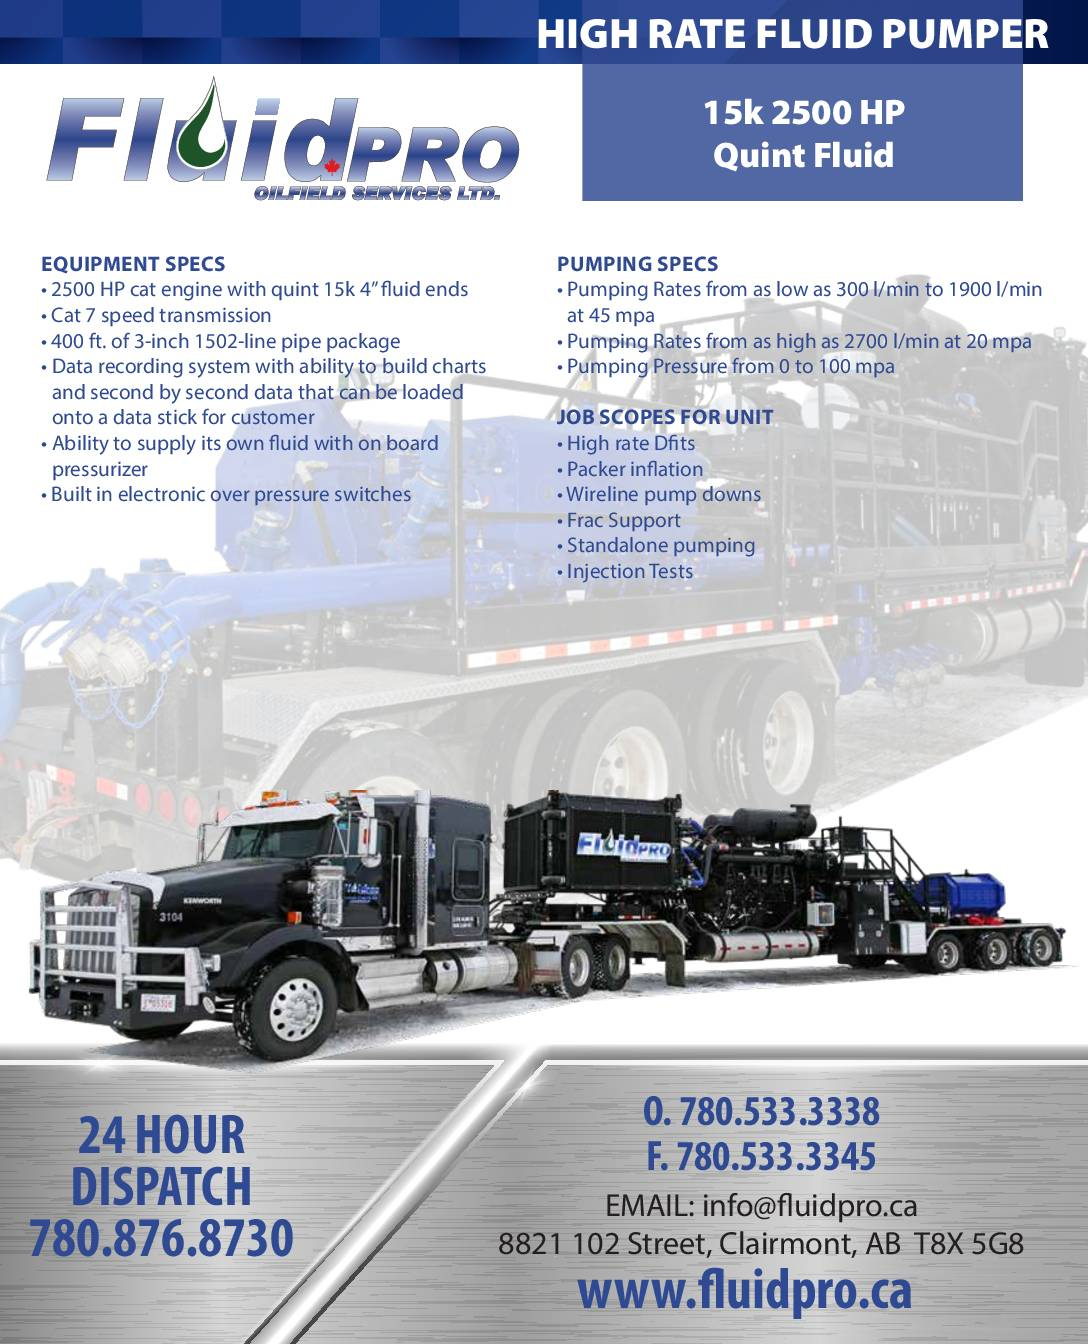 High Rate Fluid Pumper 15k 2500HP Quint Fluid